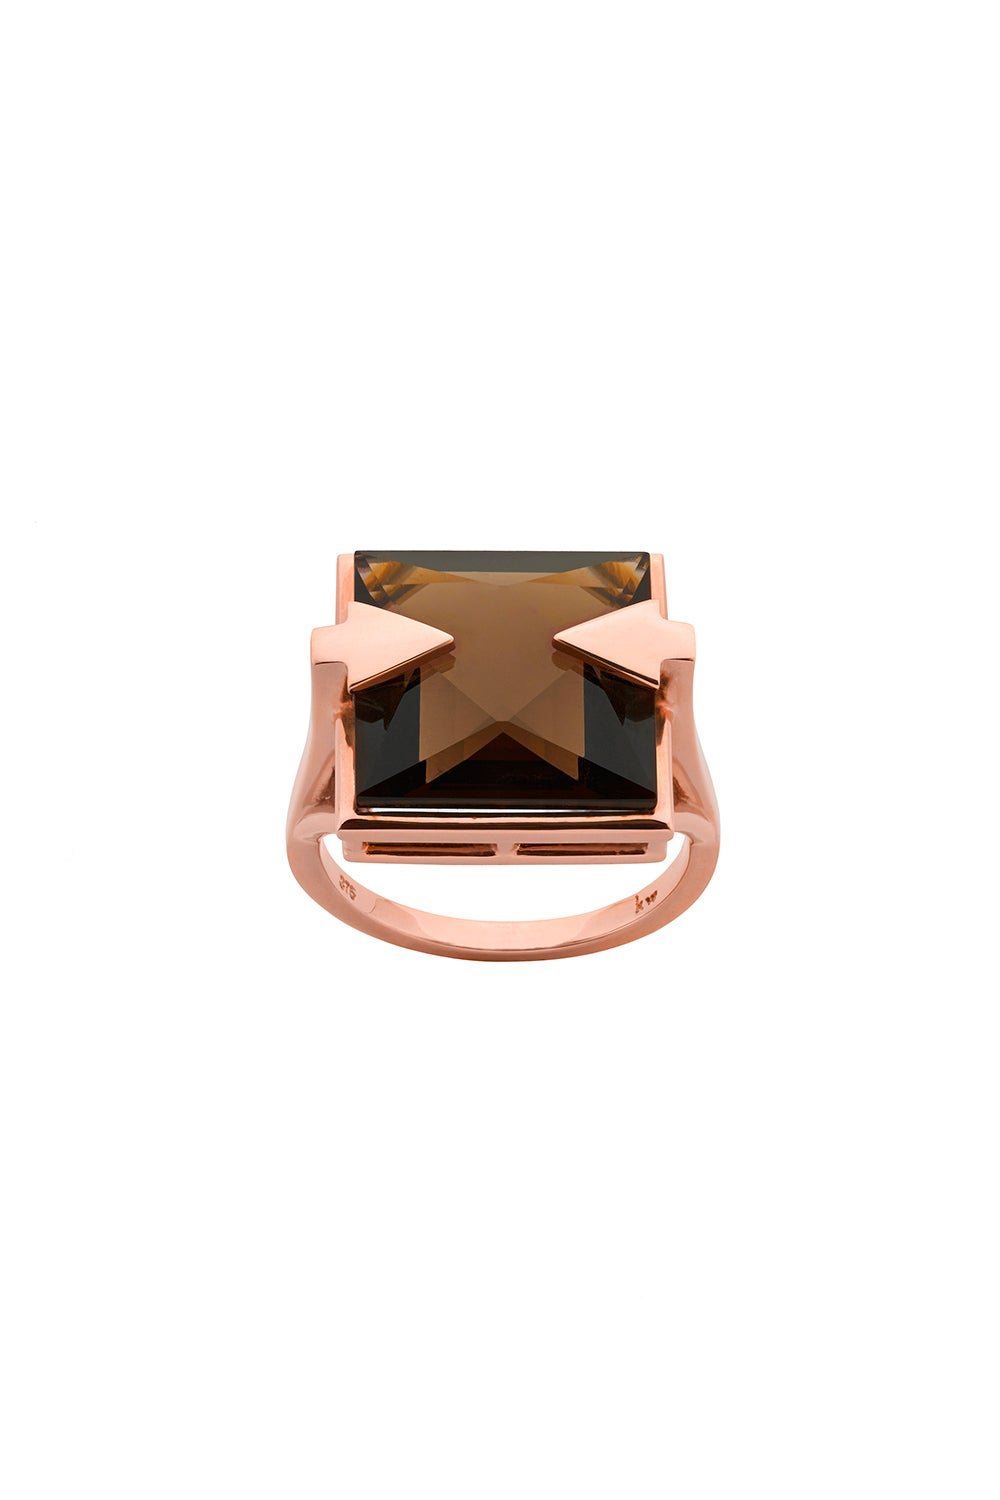 Ballistic Ring with 14mm Square Smoky Quartz Rose Gold